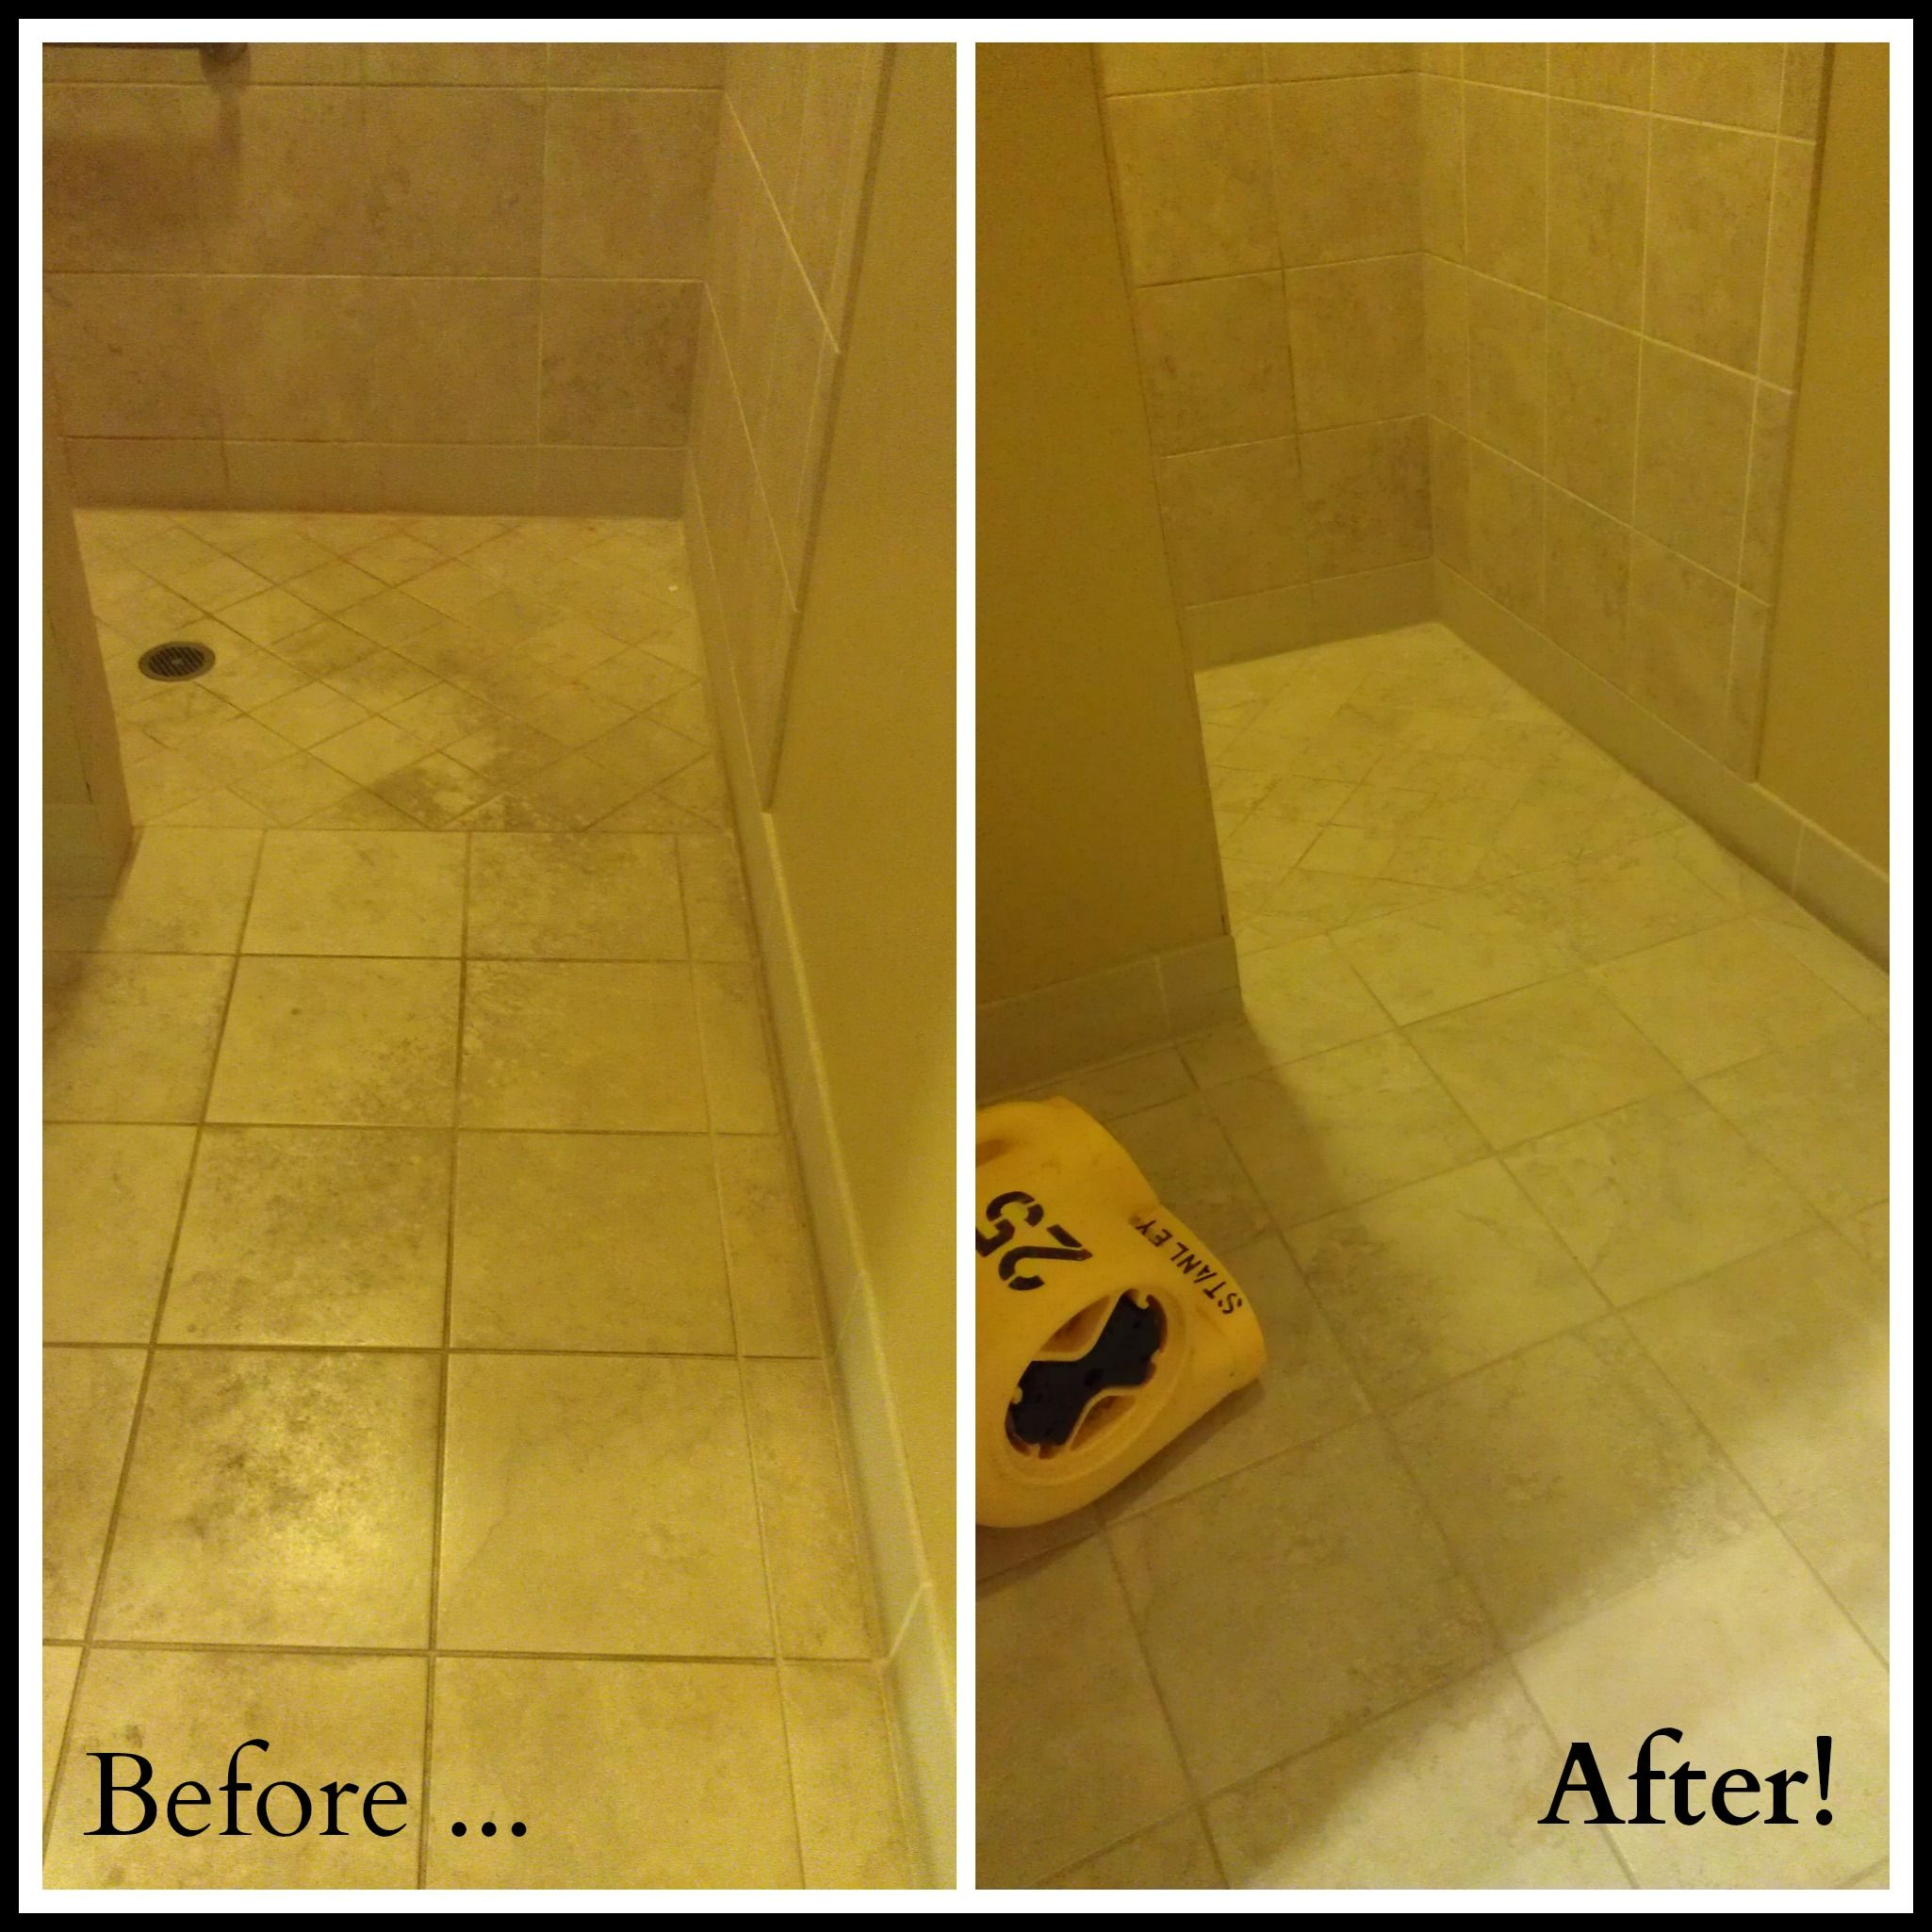 Before after tile cleaning from stanley steemer tile stone looking for a tile and grout cleaning service in the san diego area we can achieve the deep clean results that come with professional tile and grout dailygadgetfo Images